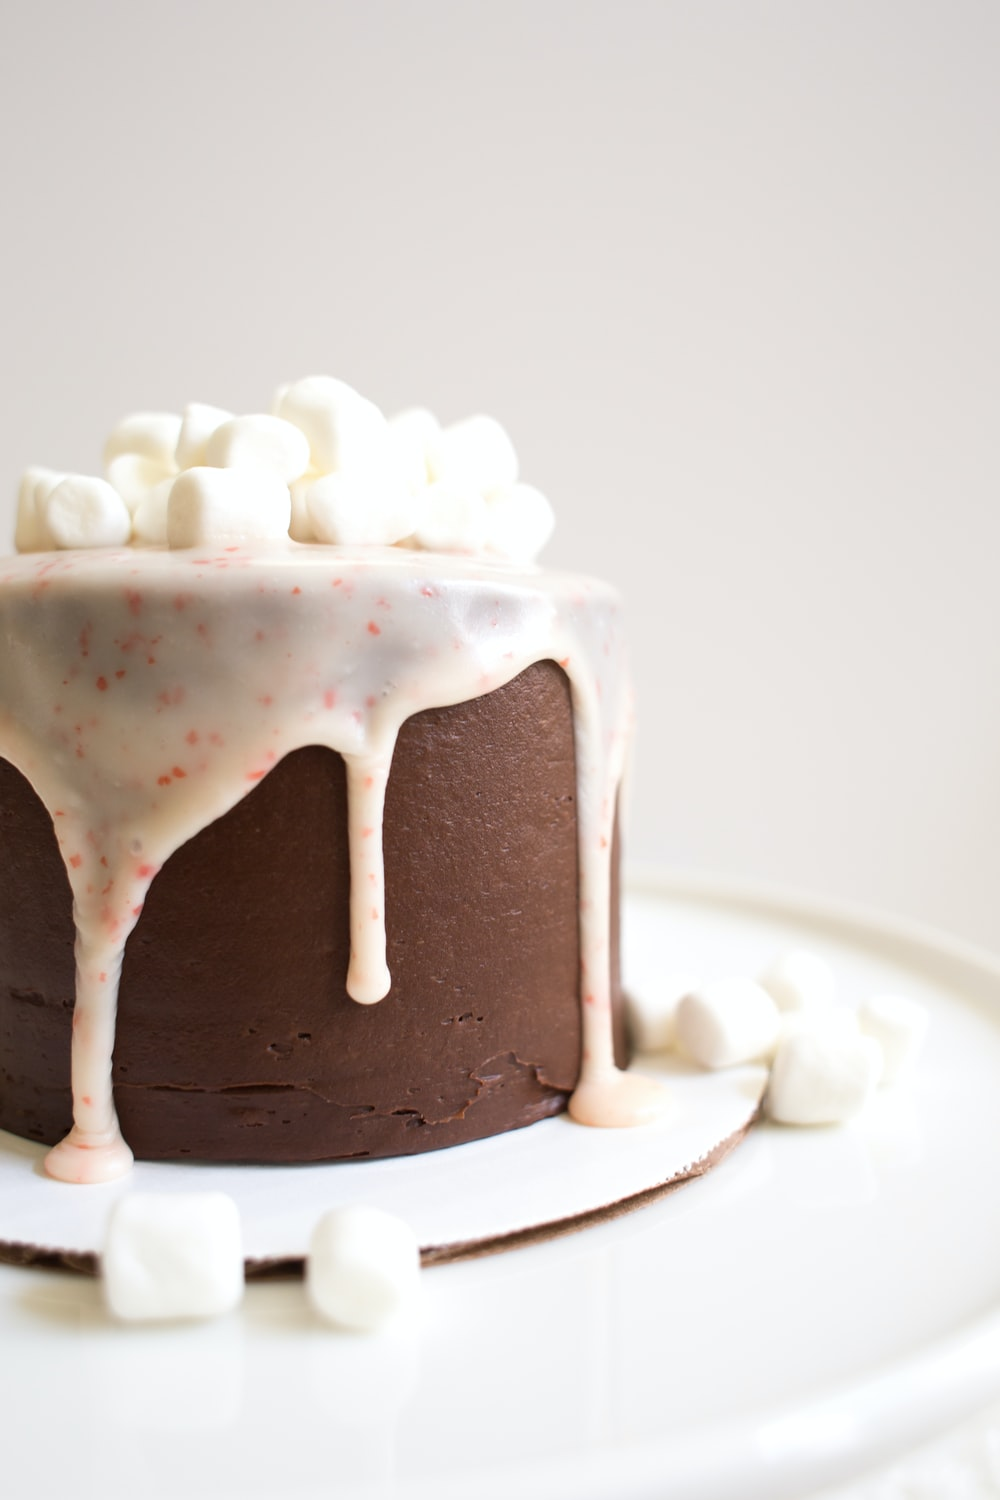 white icing-covered cake